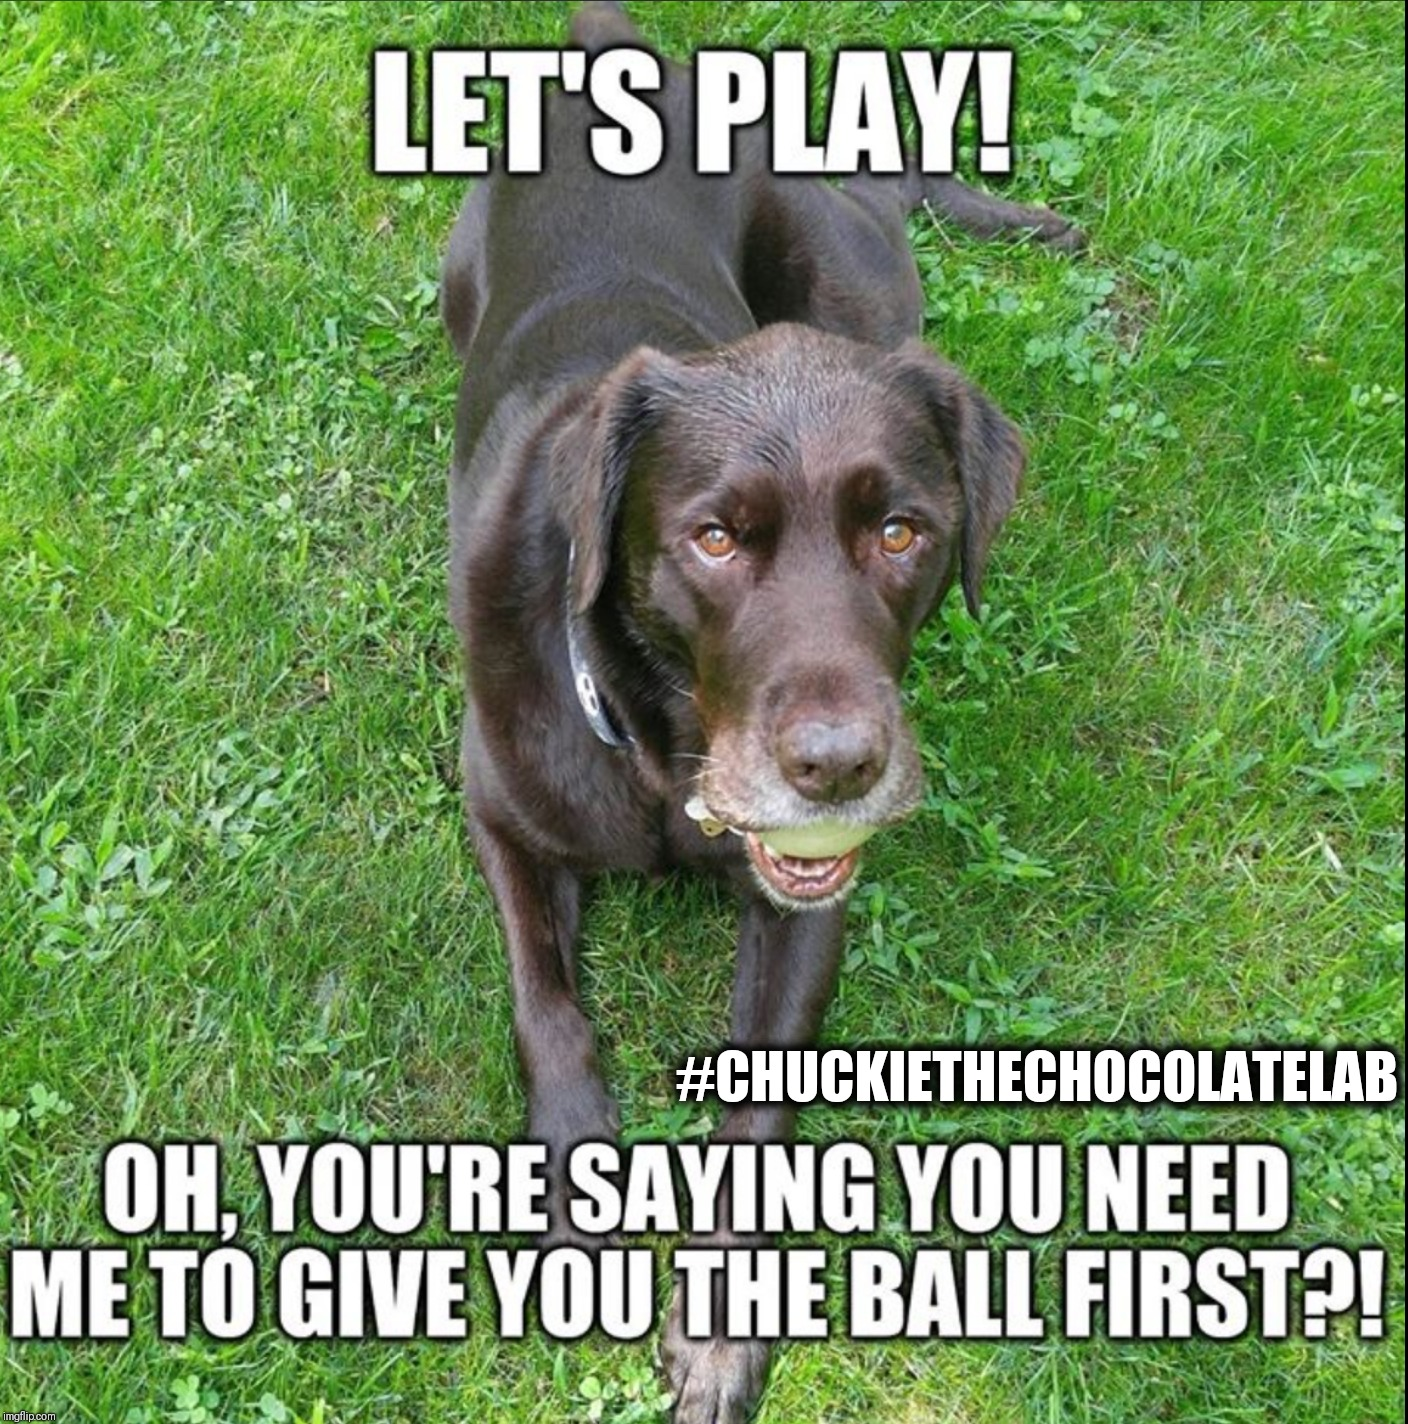 Play ball! | #CHUCKIETHECHOCOLATELAB | image tagged in chuckie the chocolate lab,ball,funny,dogs,memes | made w/ Imgflip meme maker